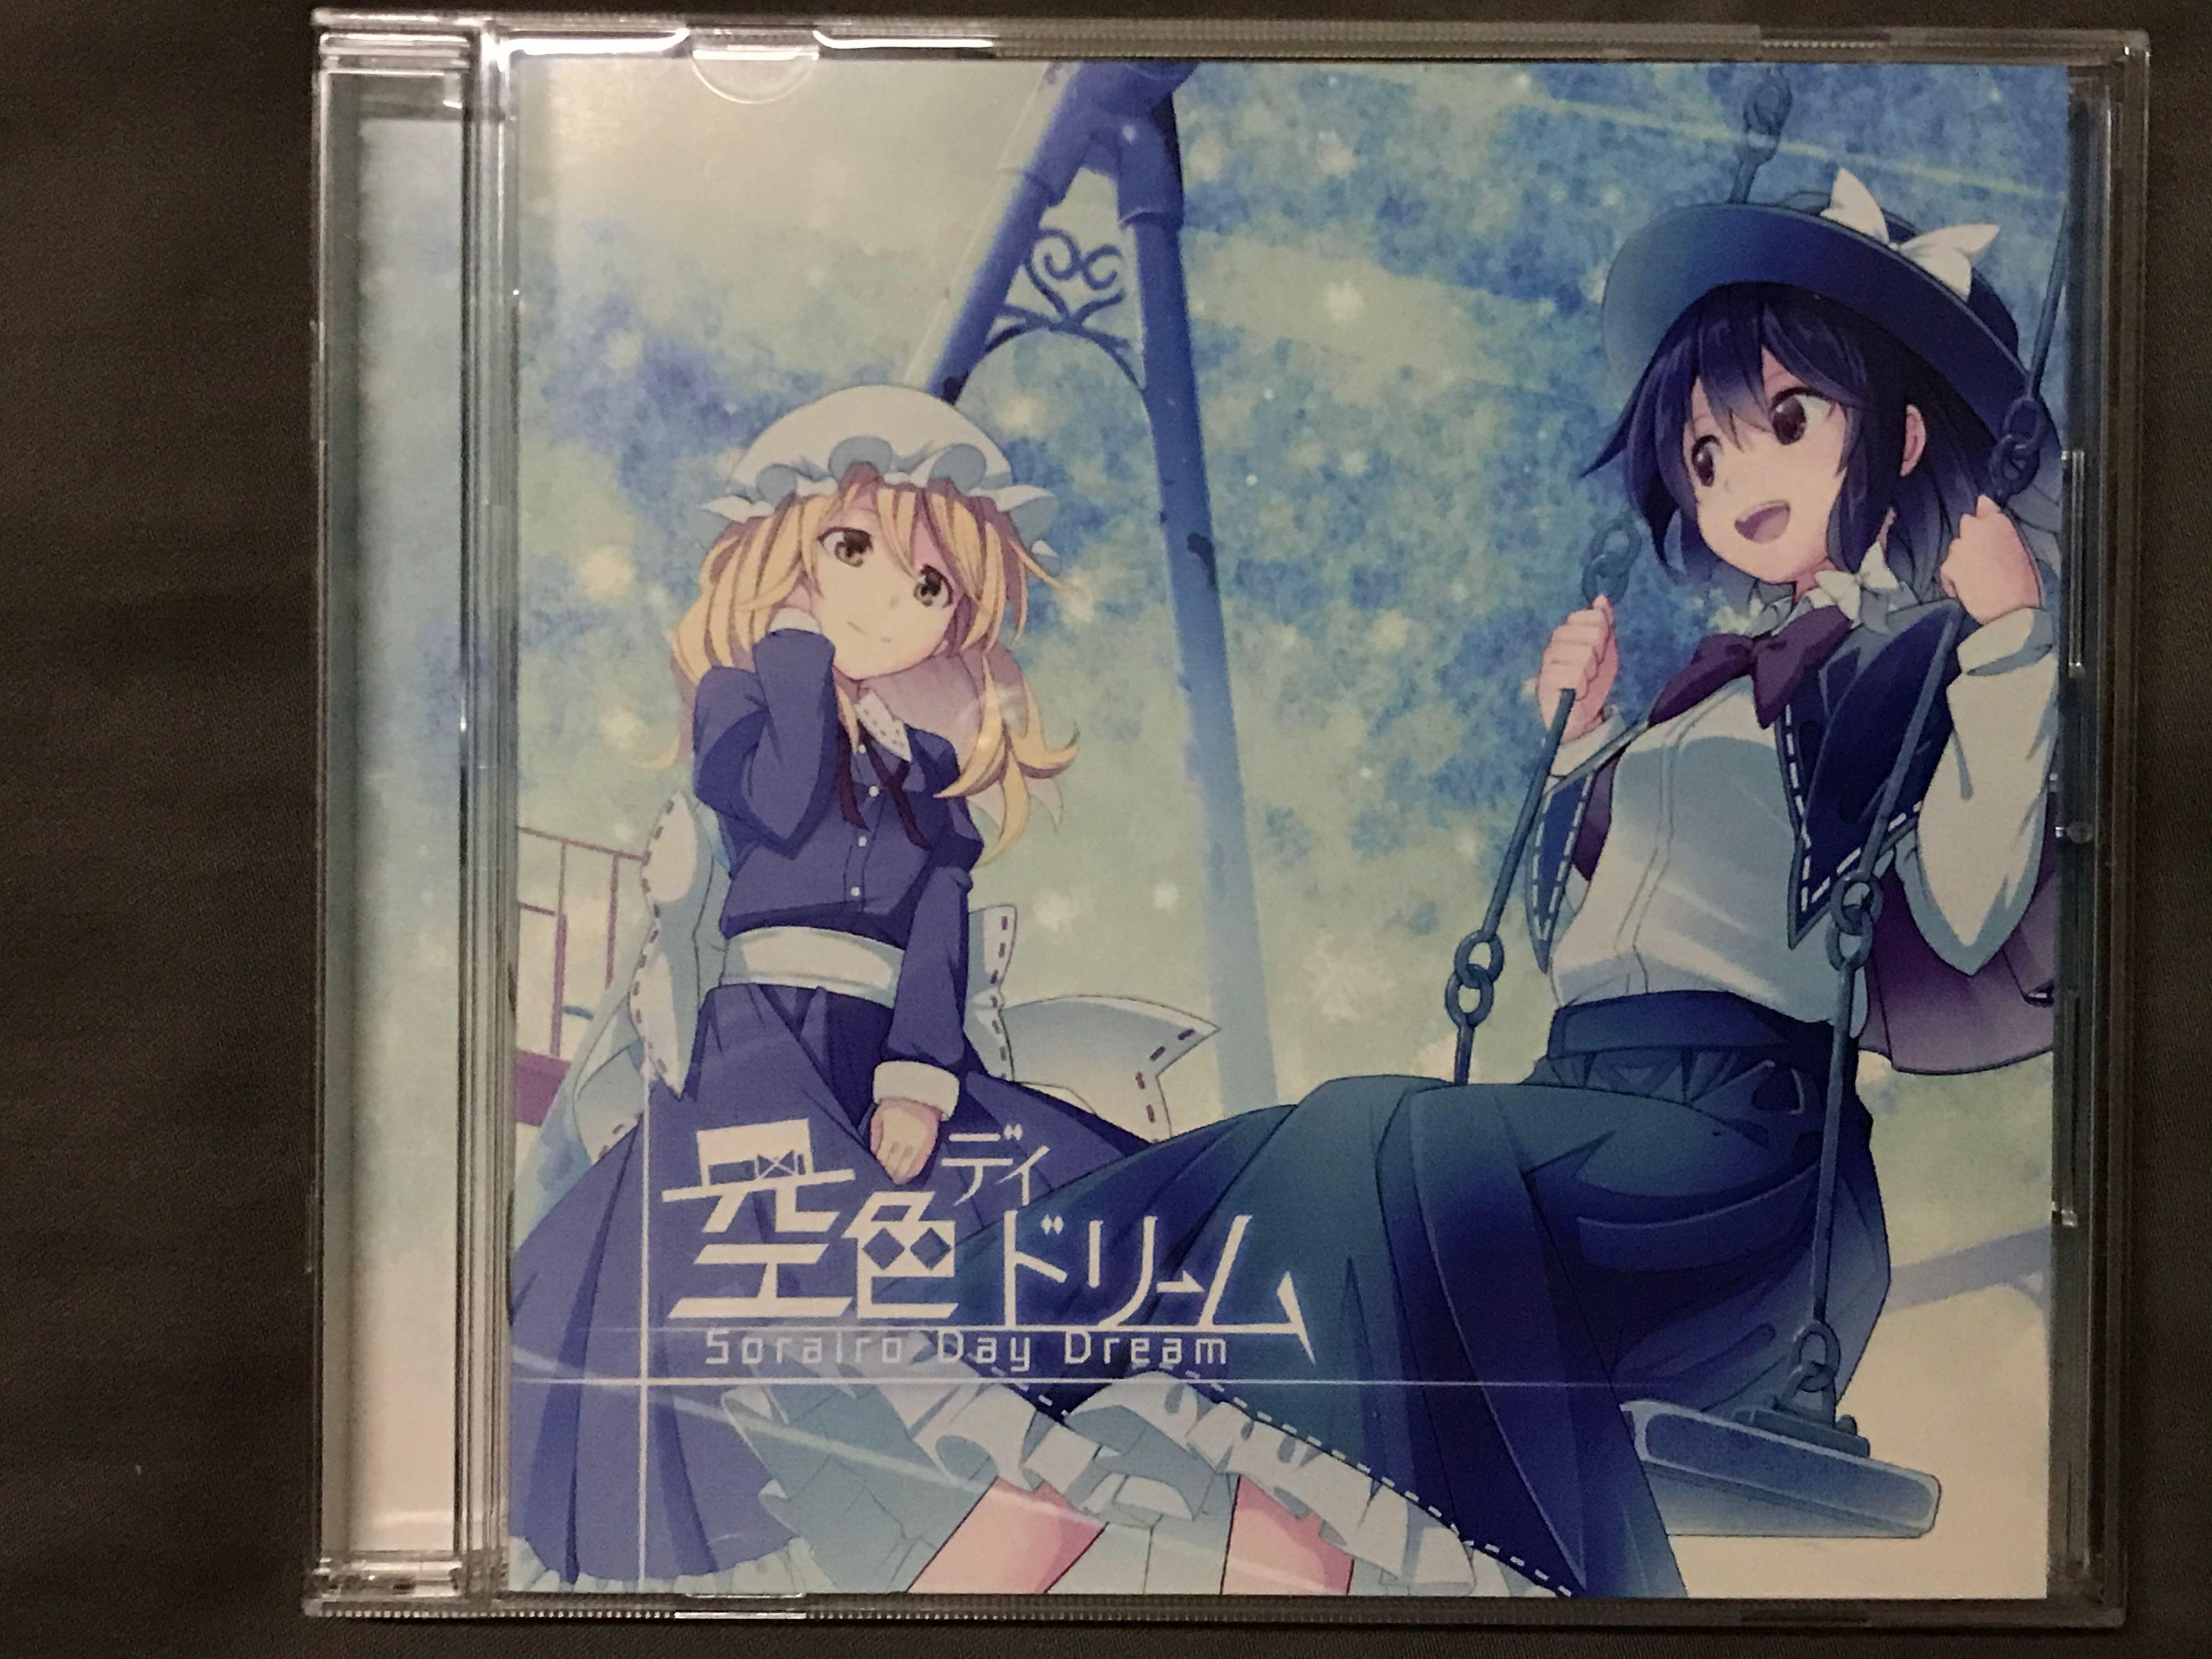 [Touhou Project] TUMENECO - TMNC028 空色デイドリーム Sorairo Day Dream, Like New Condition